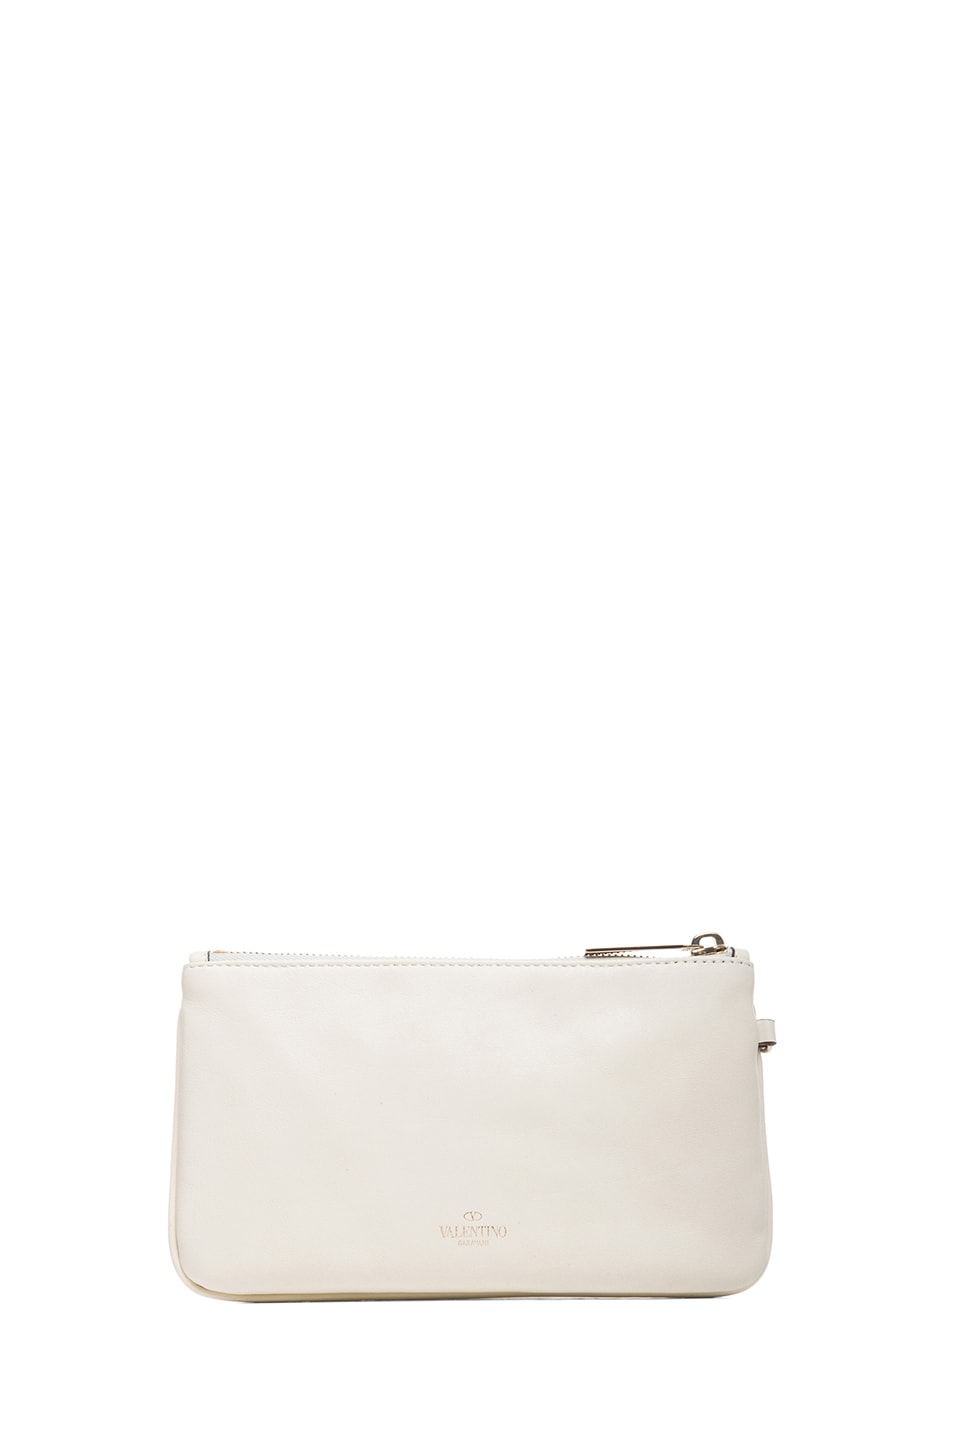 Image 2 of Valentino Rockstud Wrist Clutch in Light Ivory